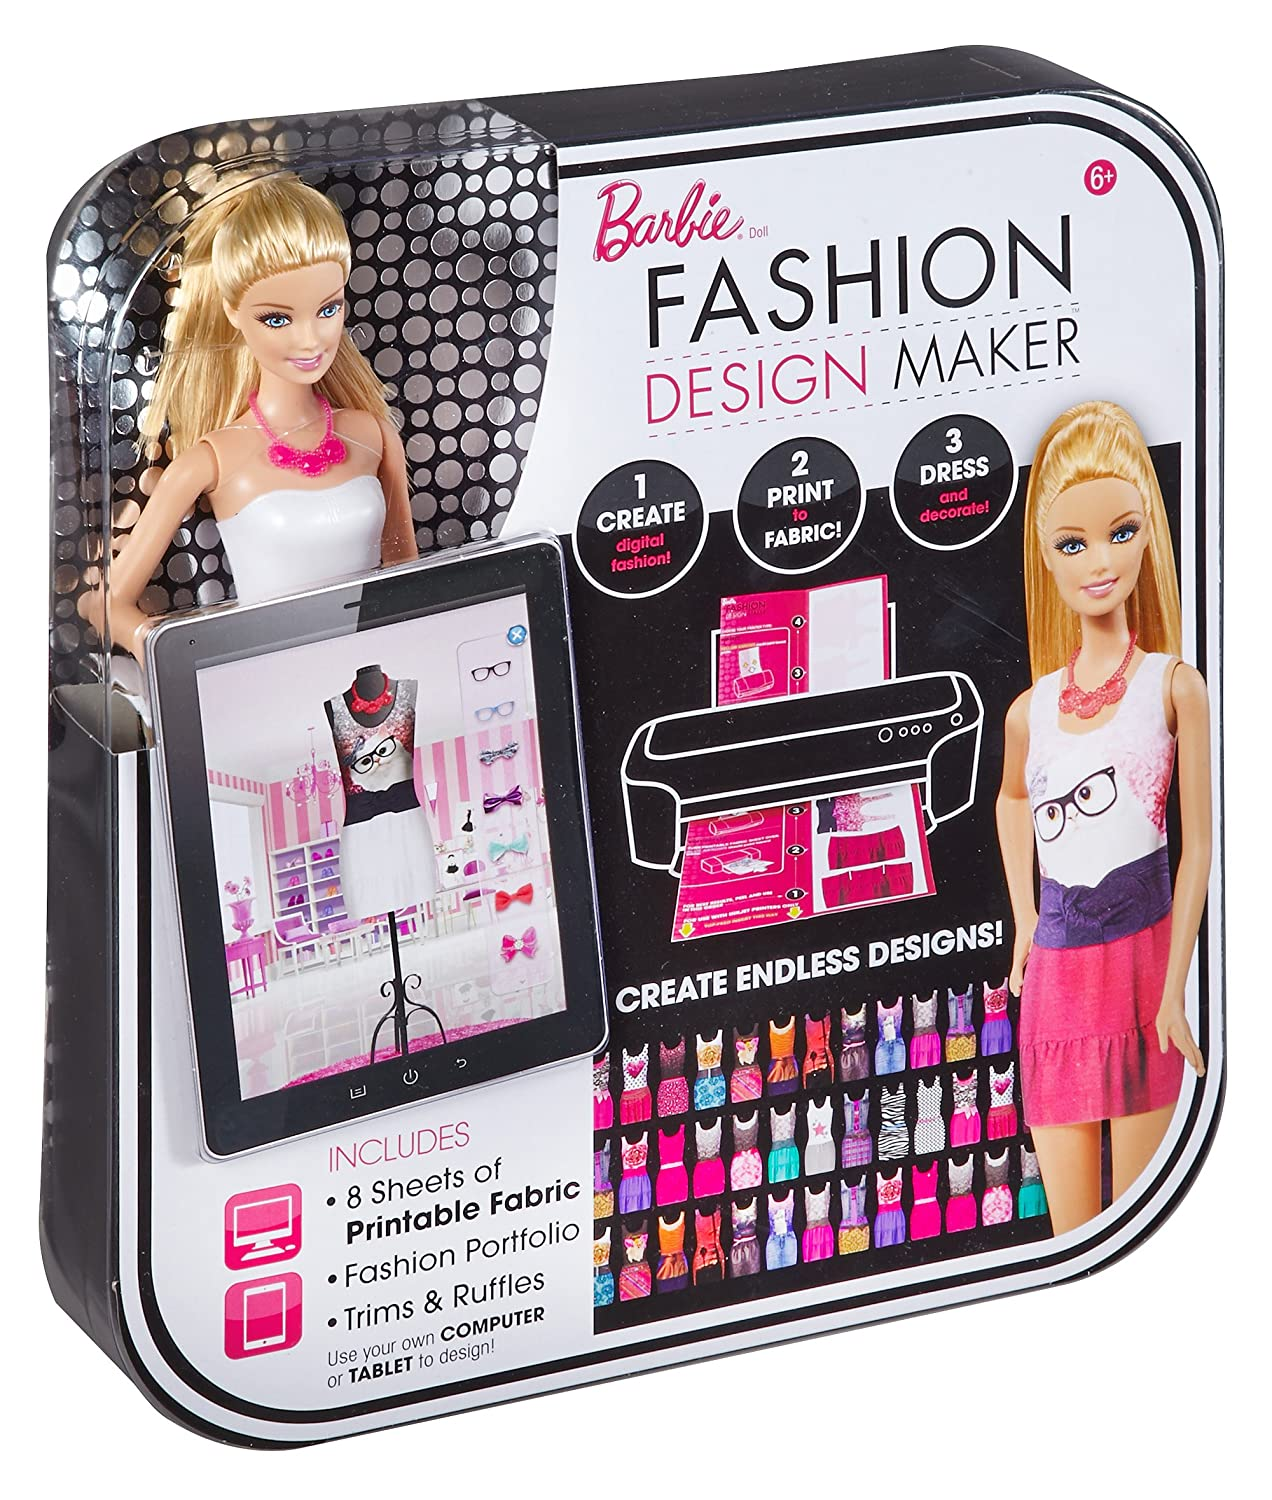 Barbie Fashion Design Maker Doll: Amazon.co.uk: Toys & Games